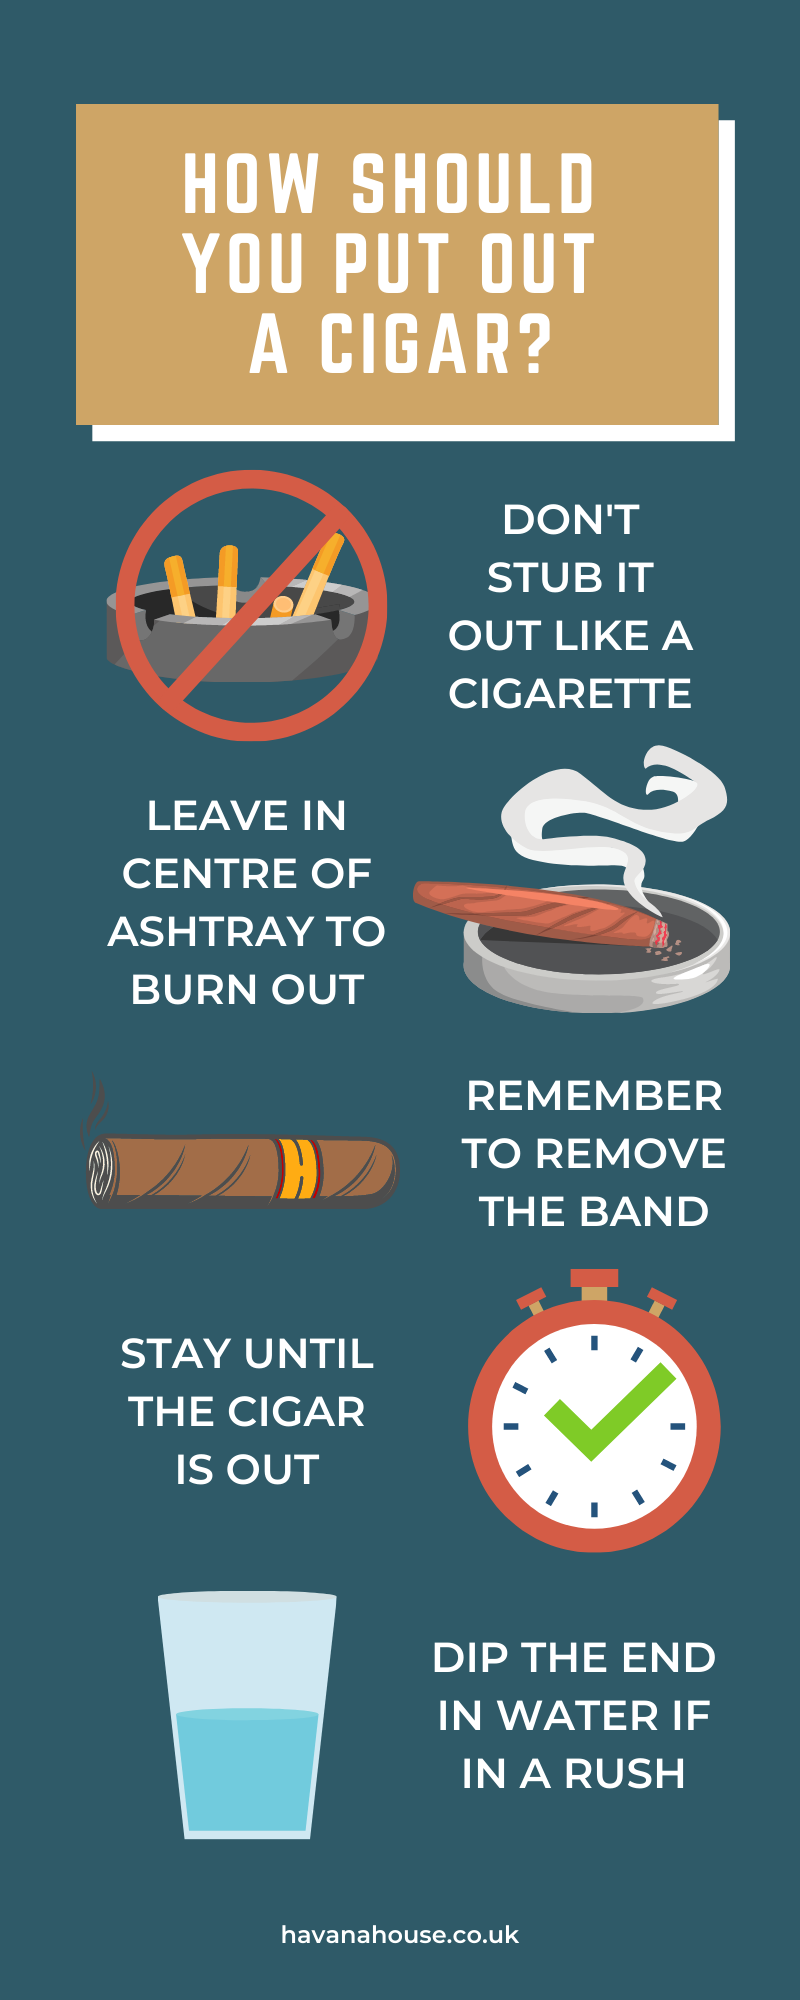 How Should I Put Out a Cigar Infographic by Havana House